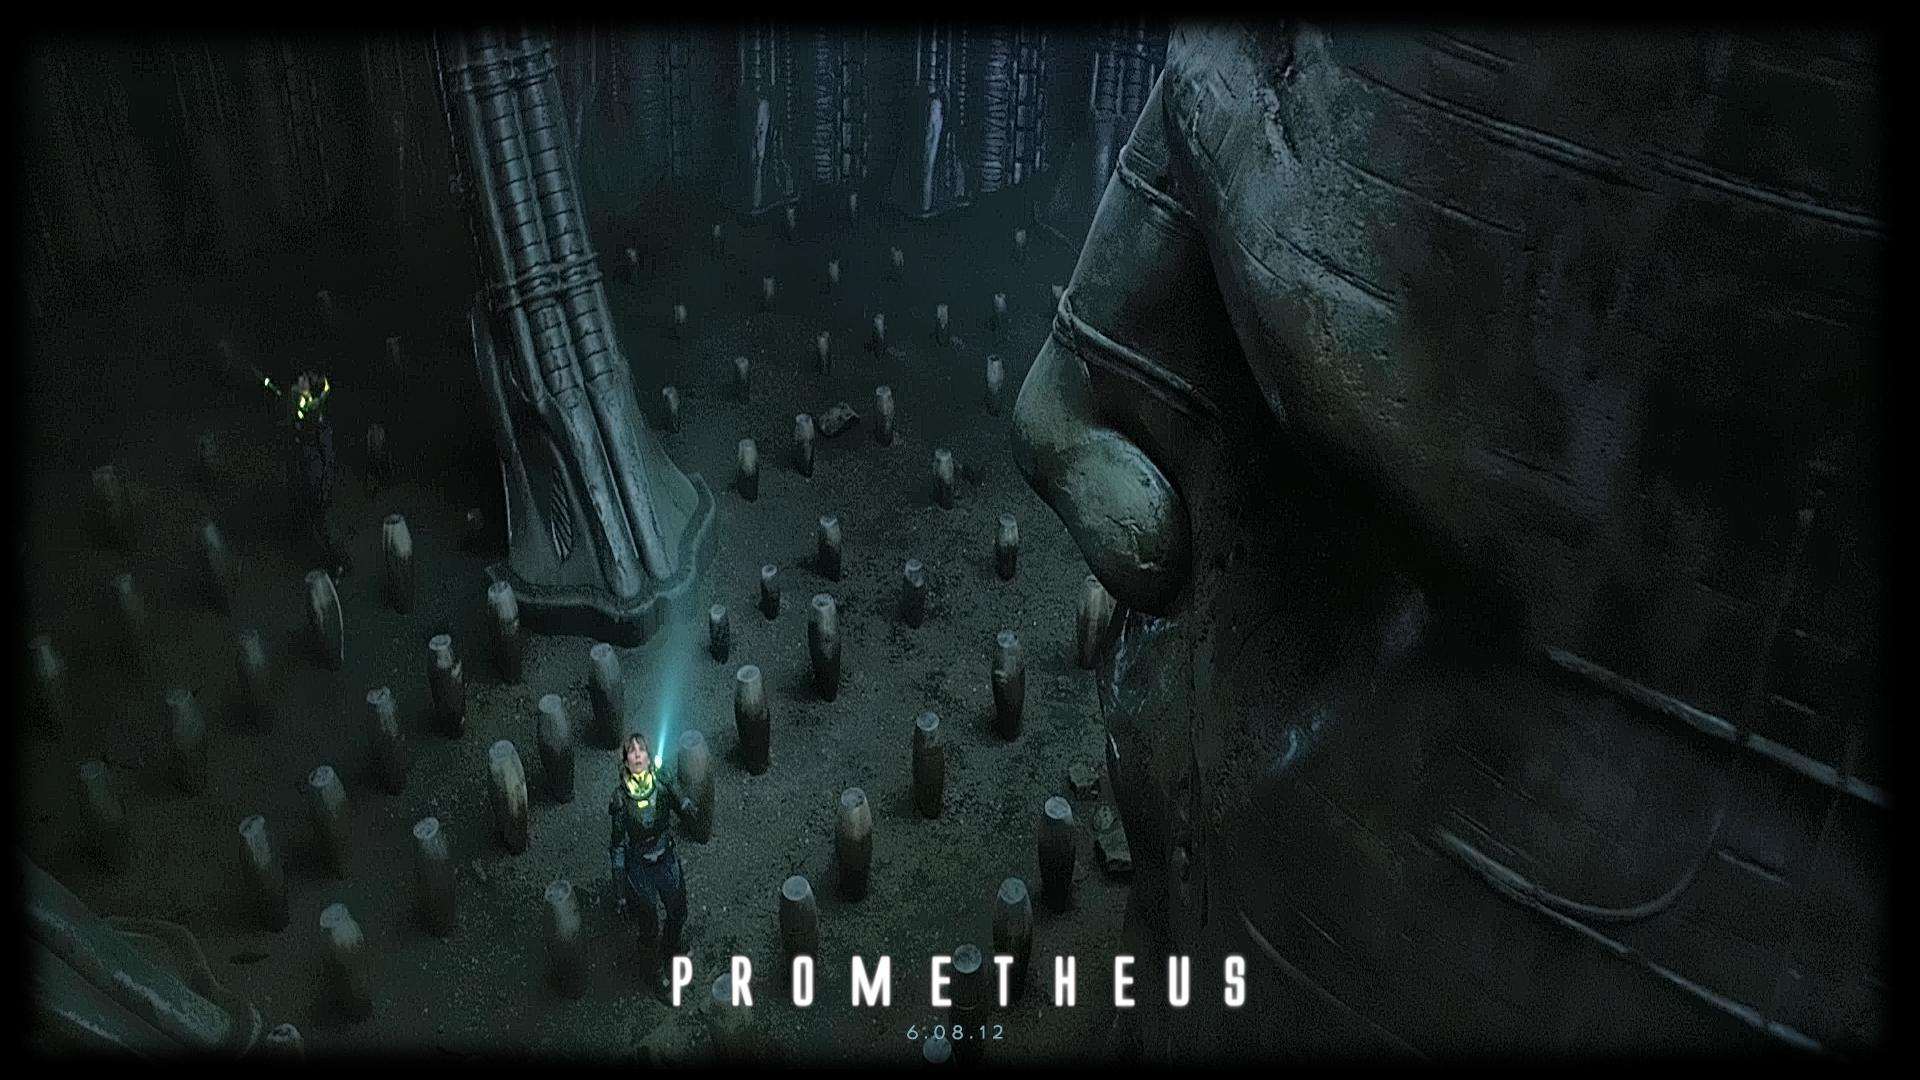 Prometheus-Wallpaper-prometheus-2012-film-33017391-1920-1080